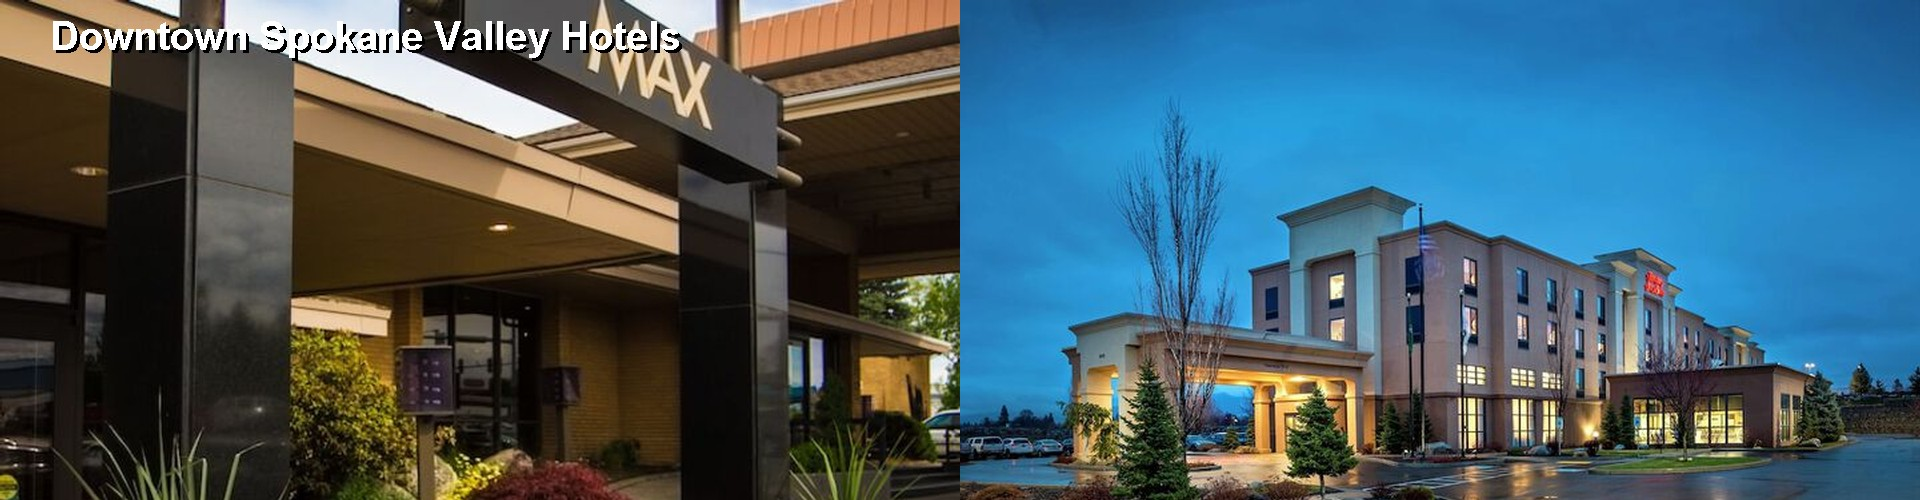 5 Best Hotels near Downtown Spokane Valley